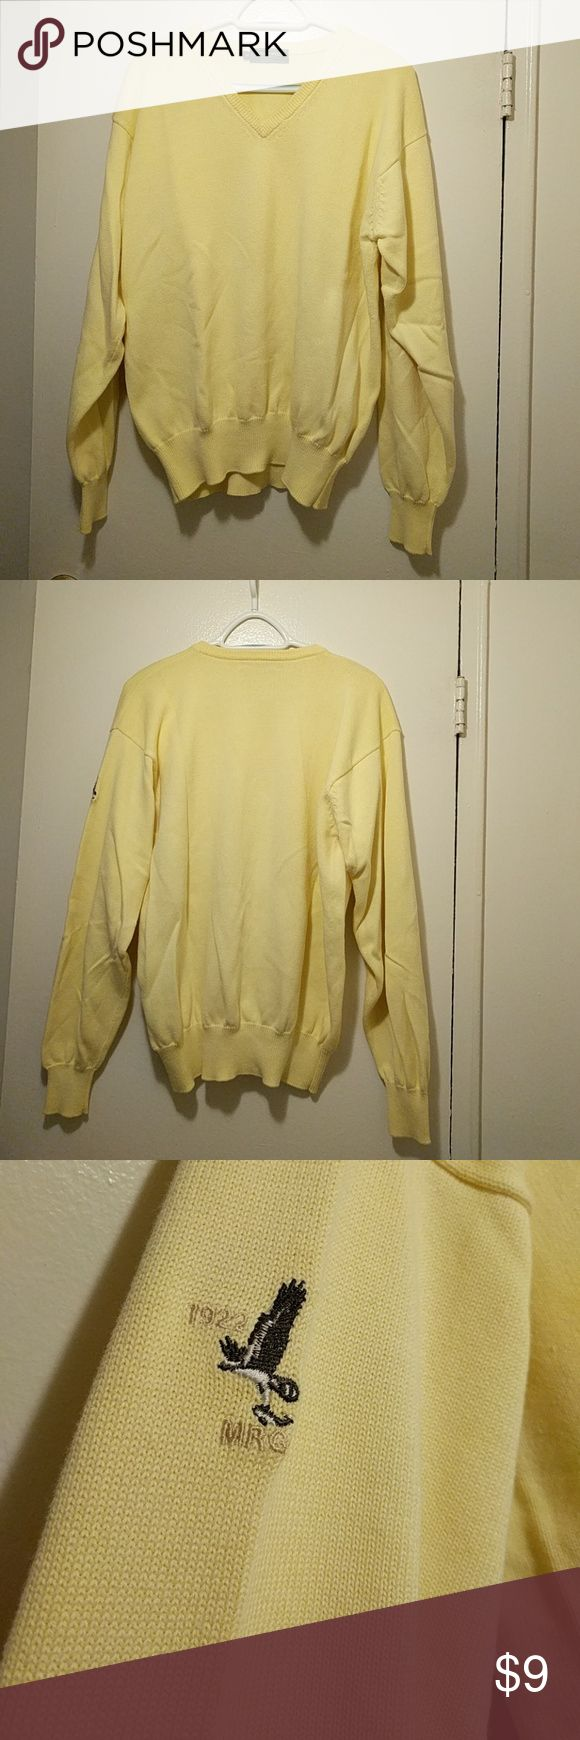 Yellow Men's Sweater Long sleeved V-neck canary yellow sweater with embroidered detail on the outer left sleeve (by bicep). Good condition! No holes or pulls. Looks stellar with khakis! Greenwich Sweaters